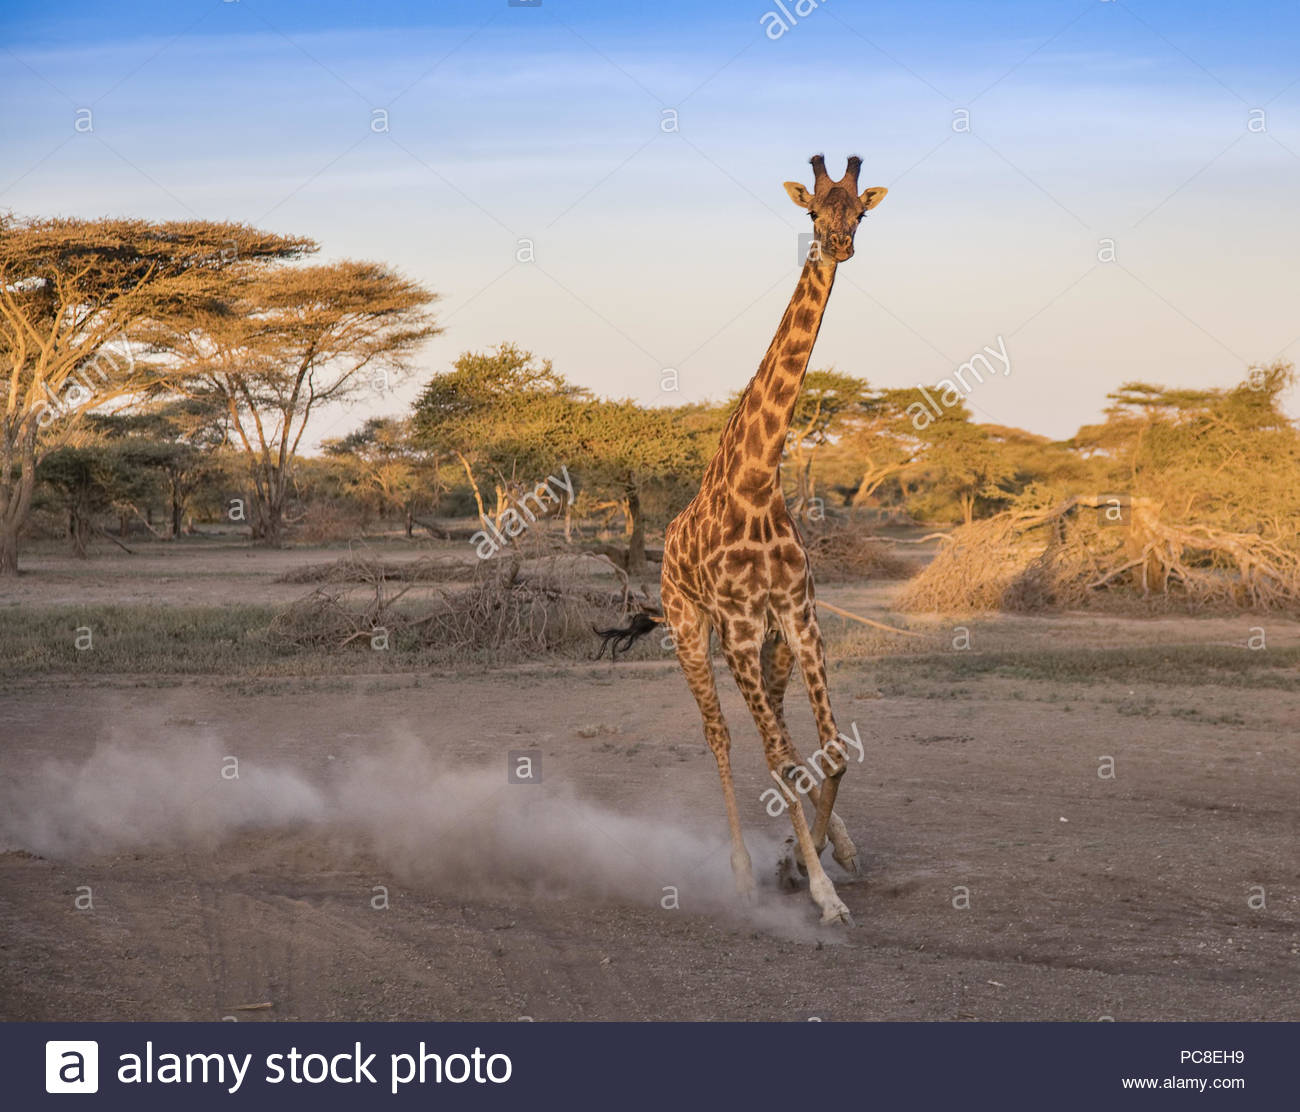 A giraffe frightened by a threat gallops in the Ngorongoro Conservation Area. - Stock Image